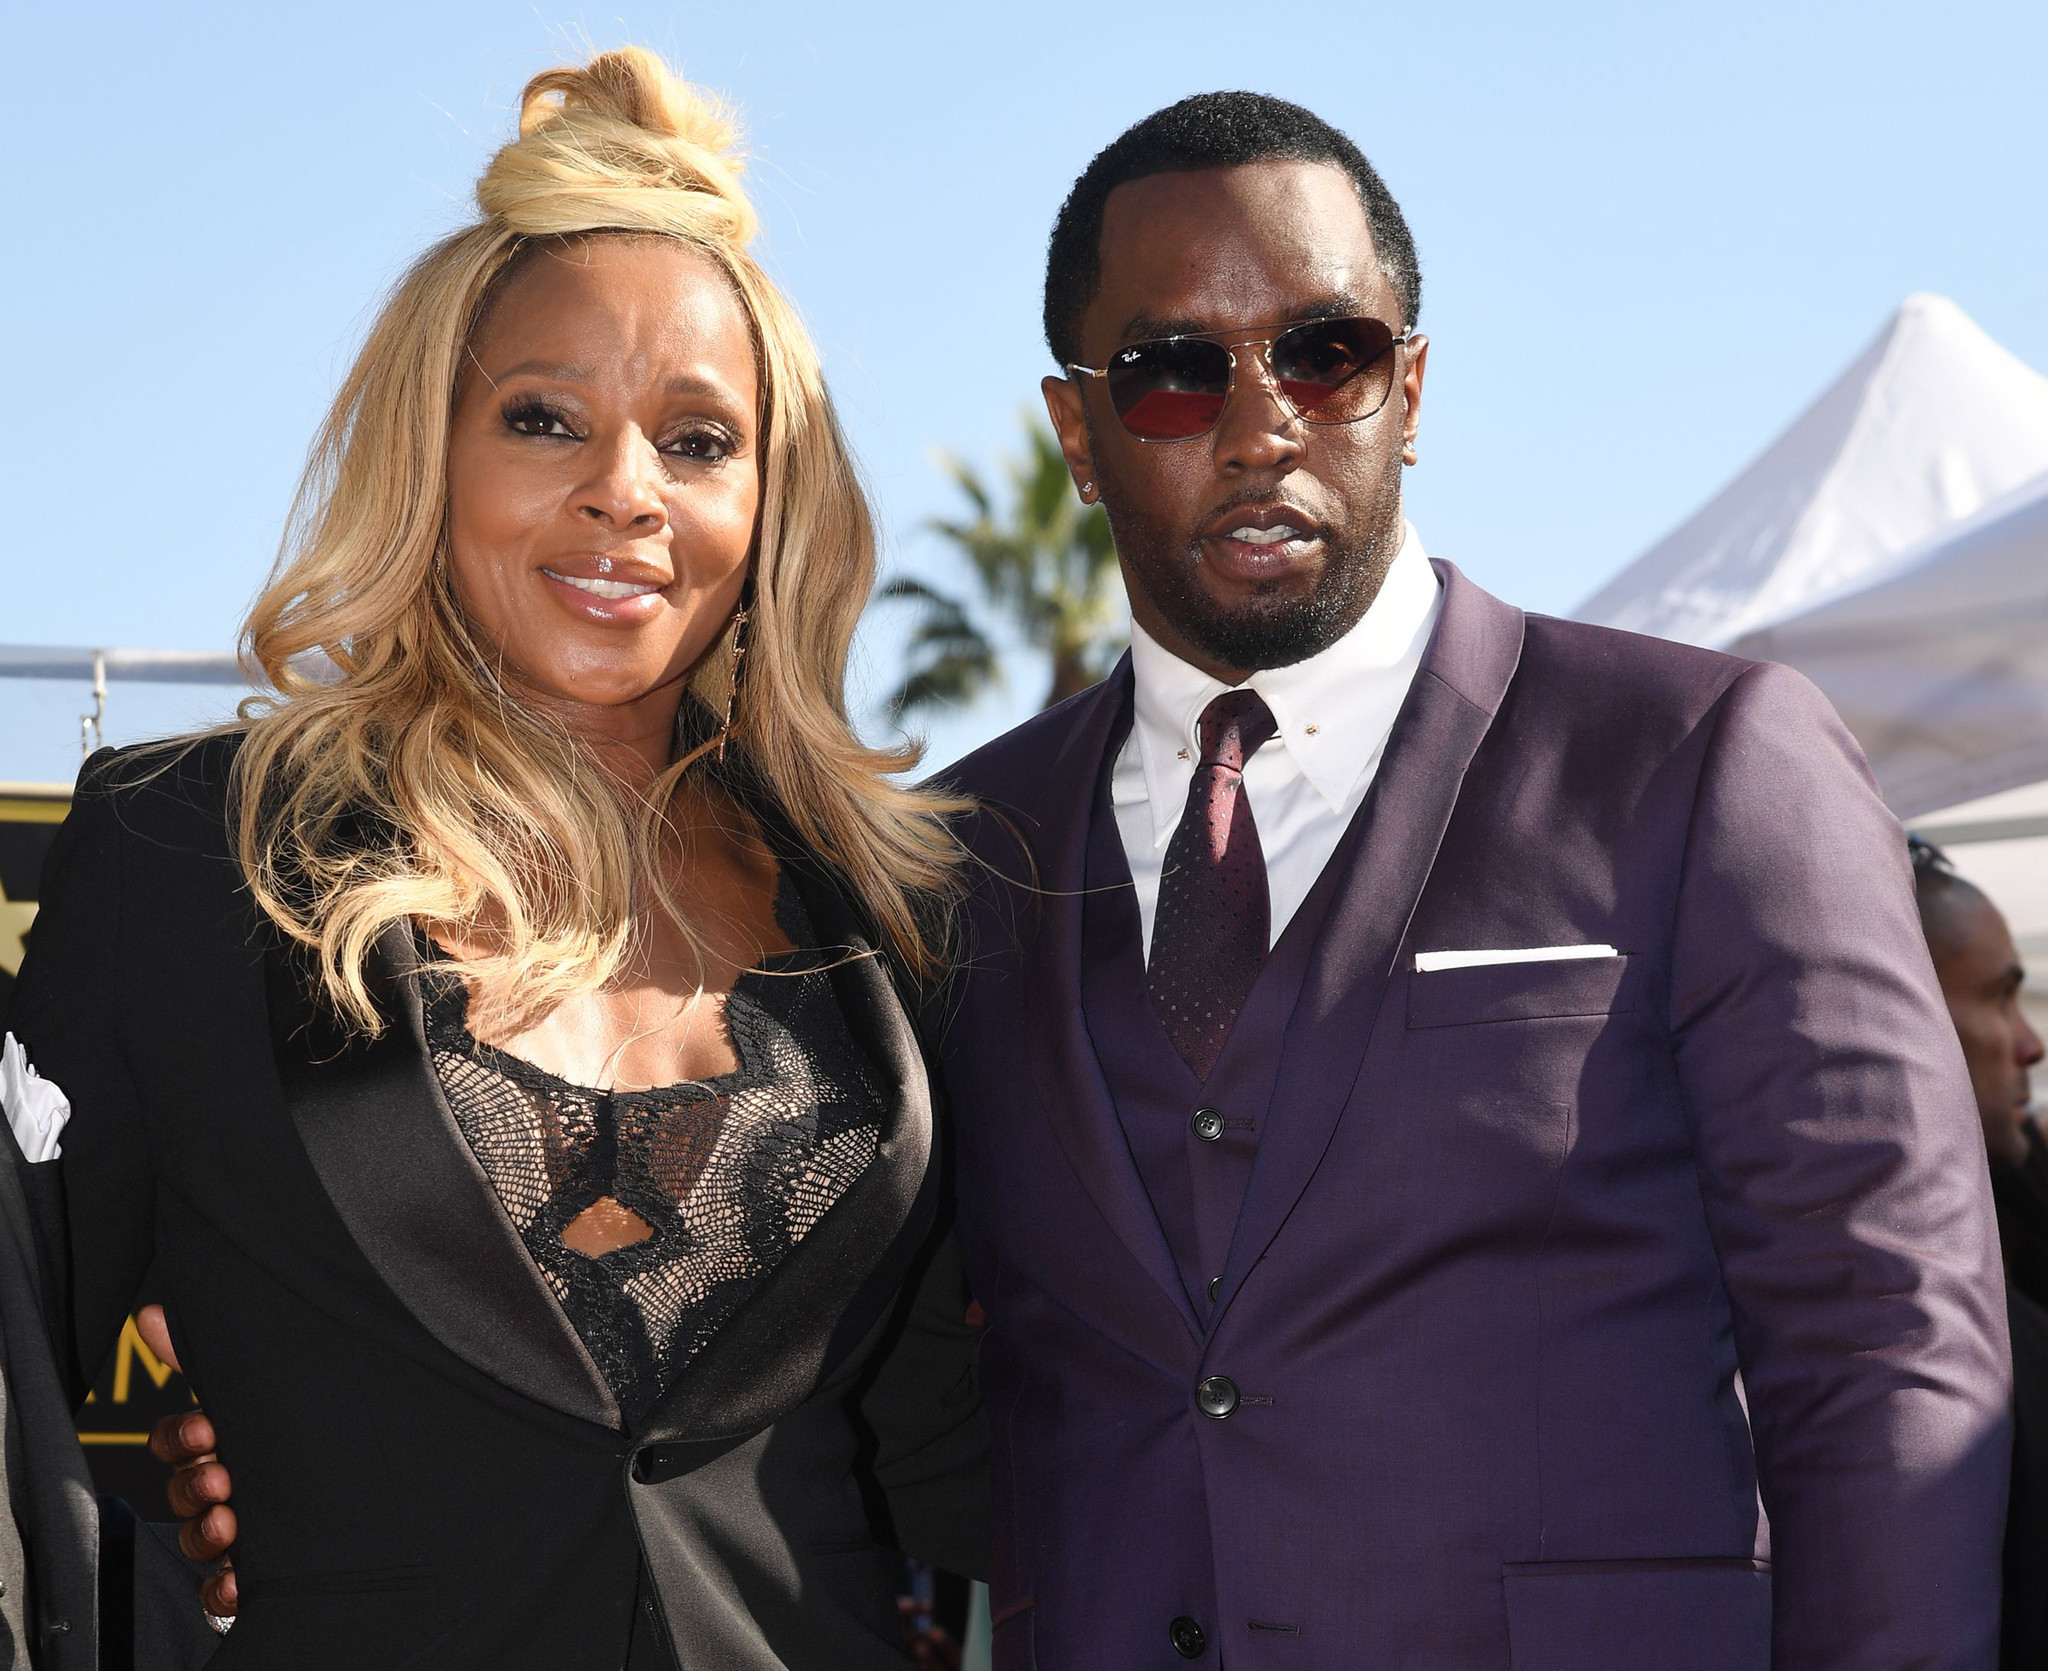 Mary J. Blige documentary underway for Amazon, executive produced by Sean 'Diddy' Combs